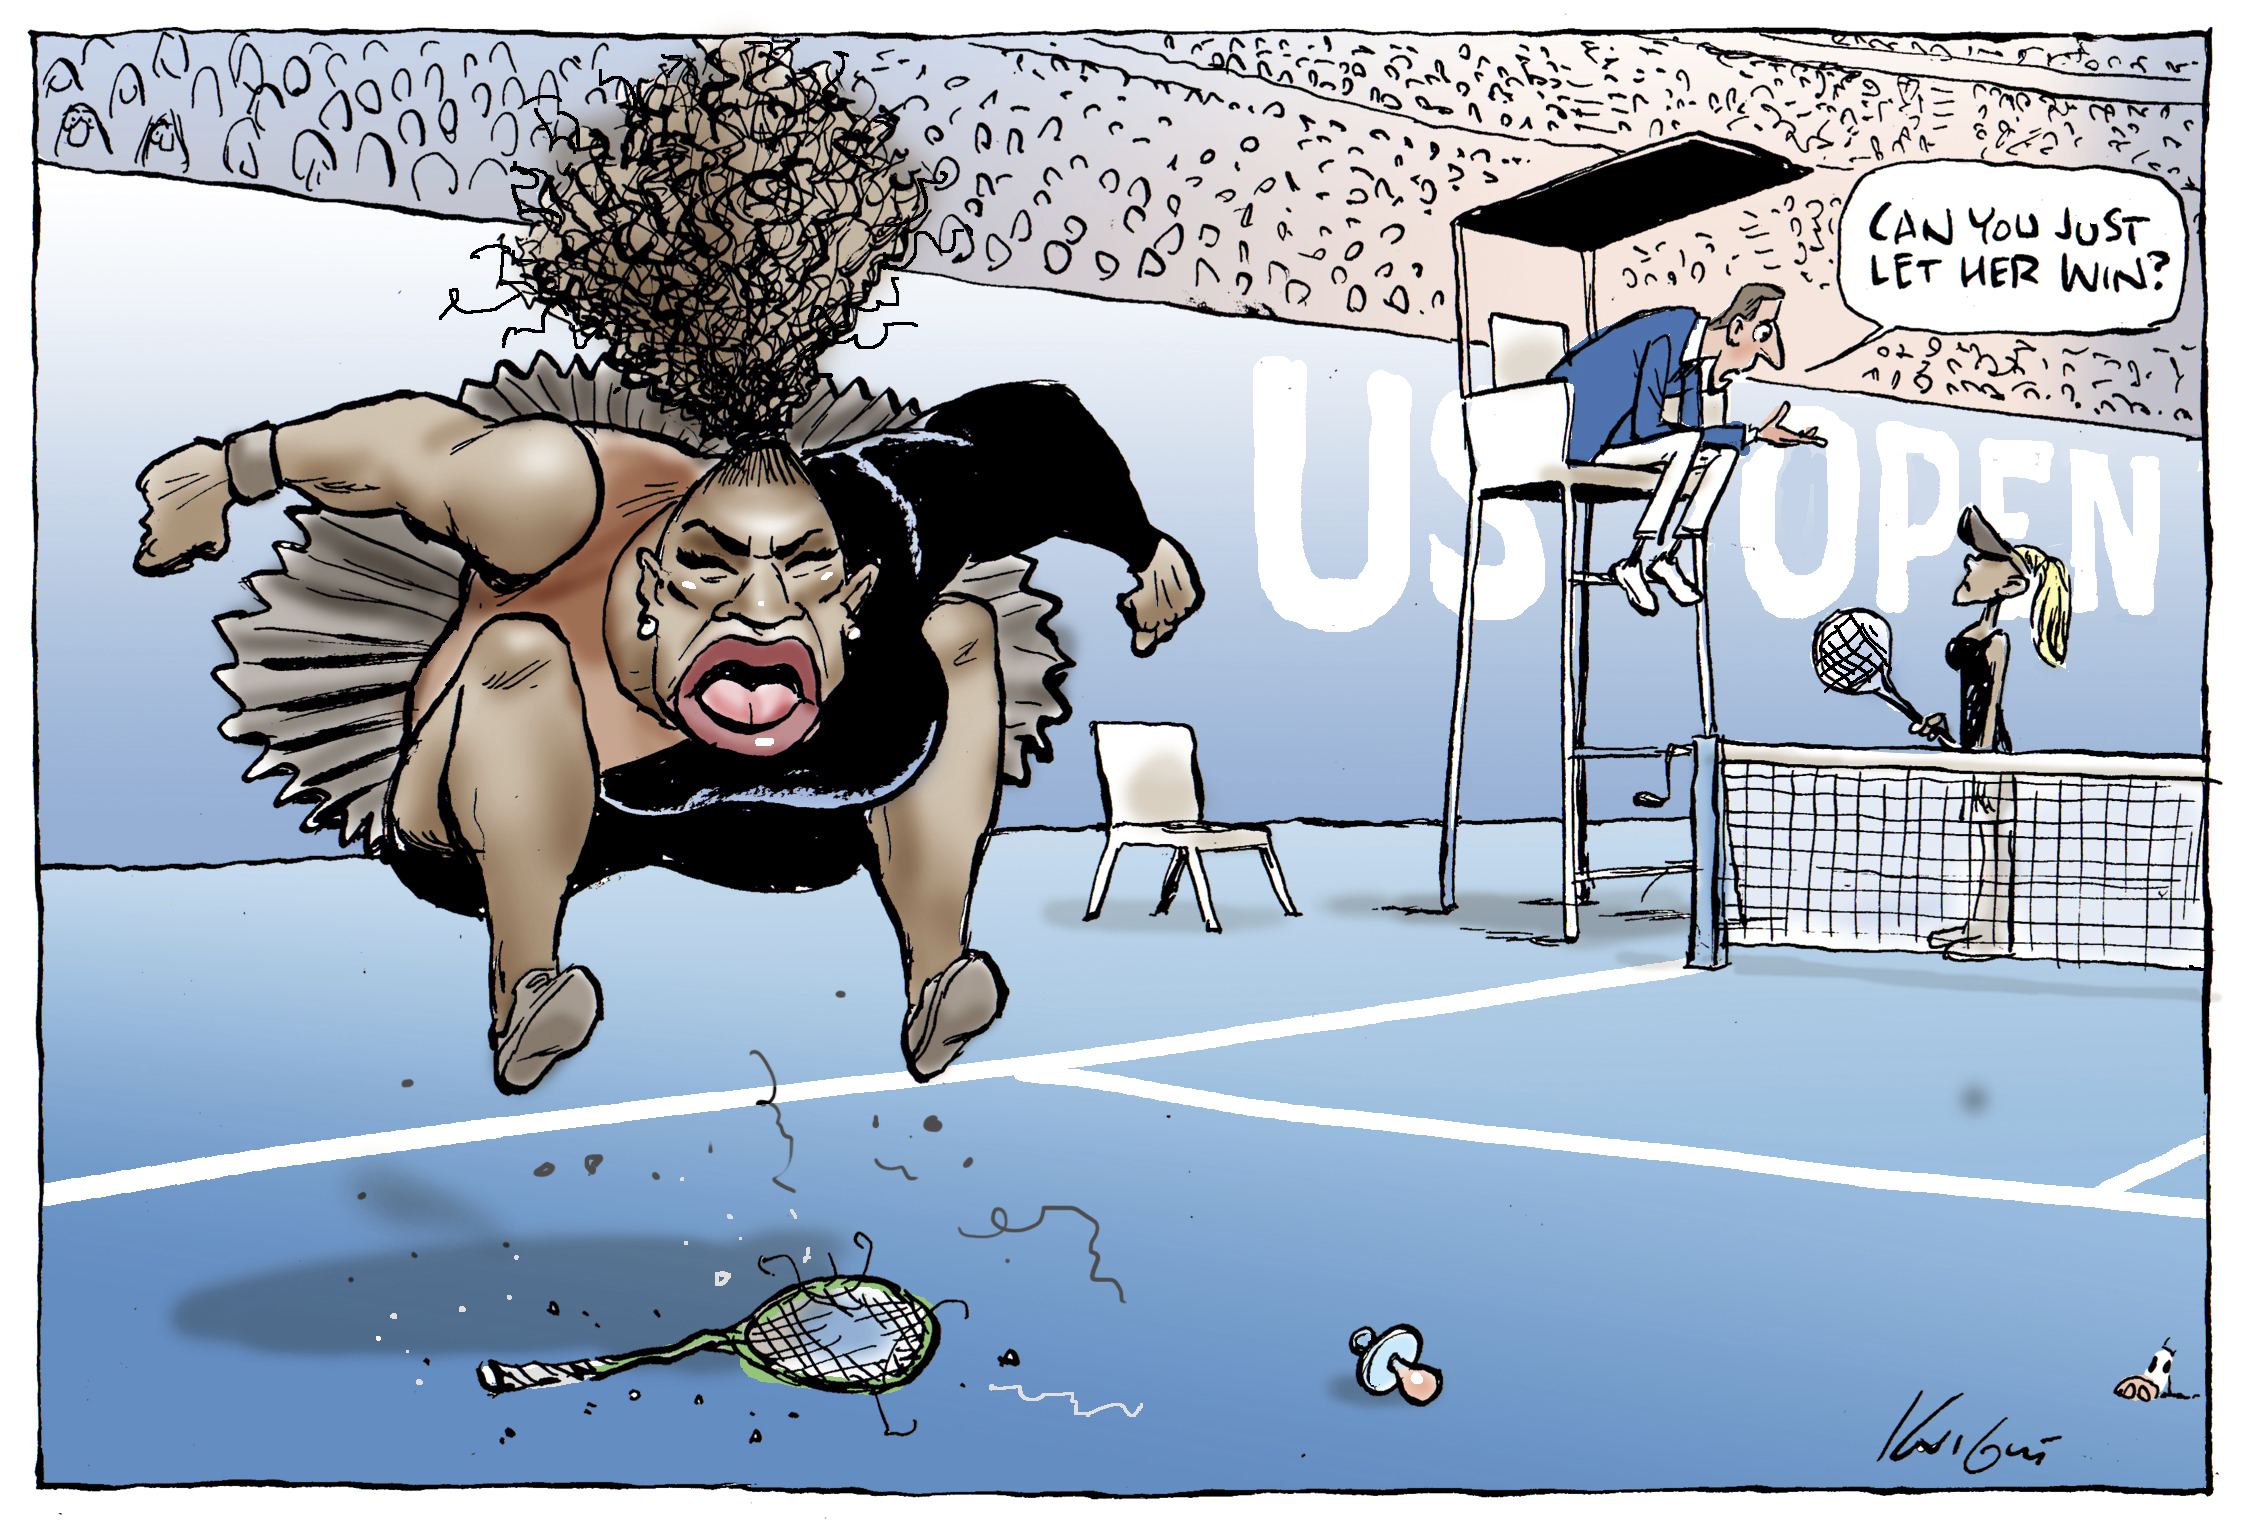 The Long History Behind The Racist Attacks On Serena Williams